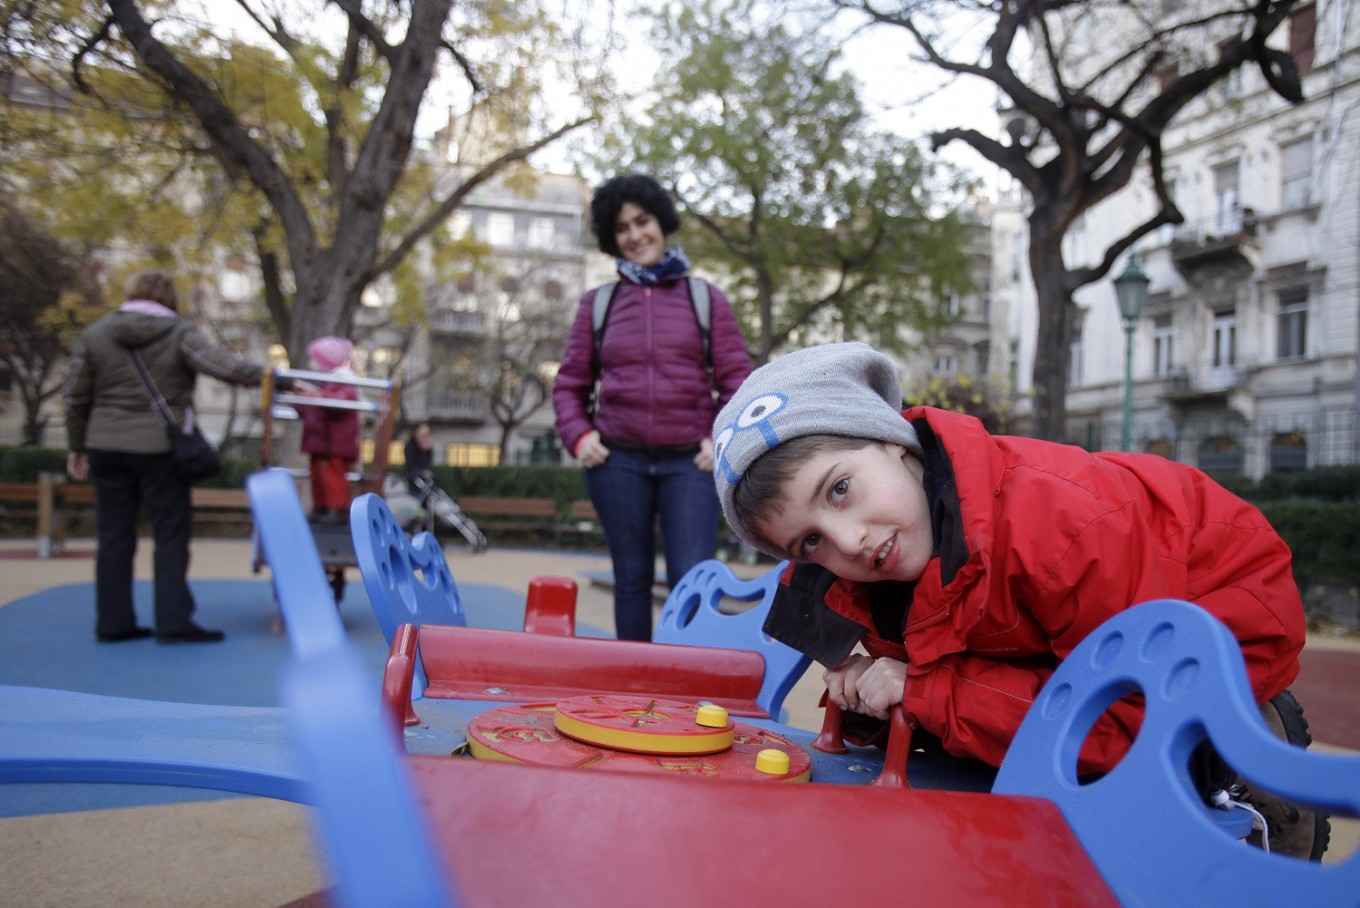 'Inclusive' Hungary playgrounds for disabled kids